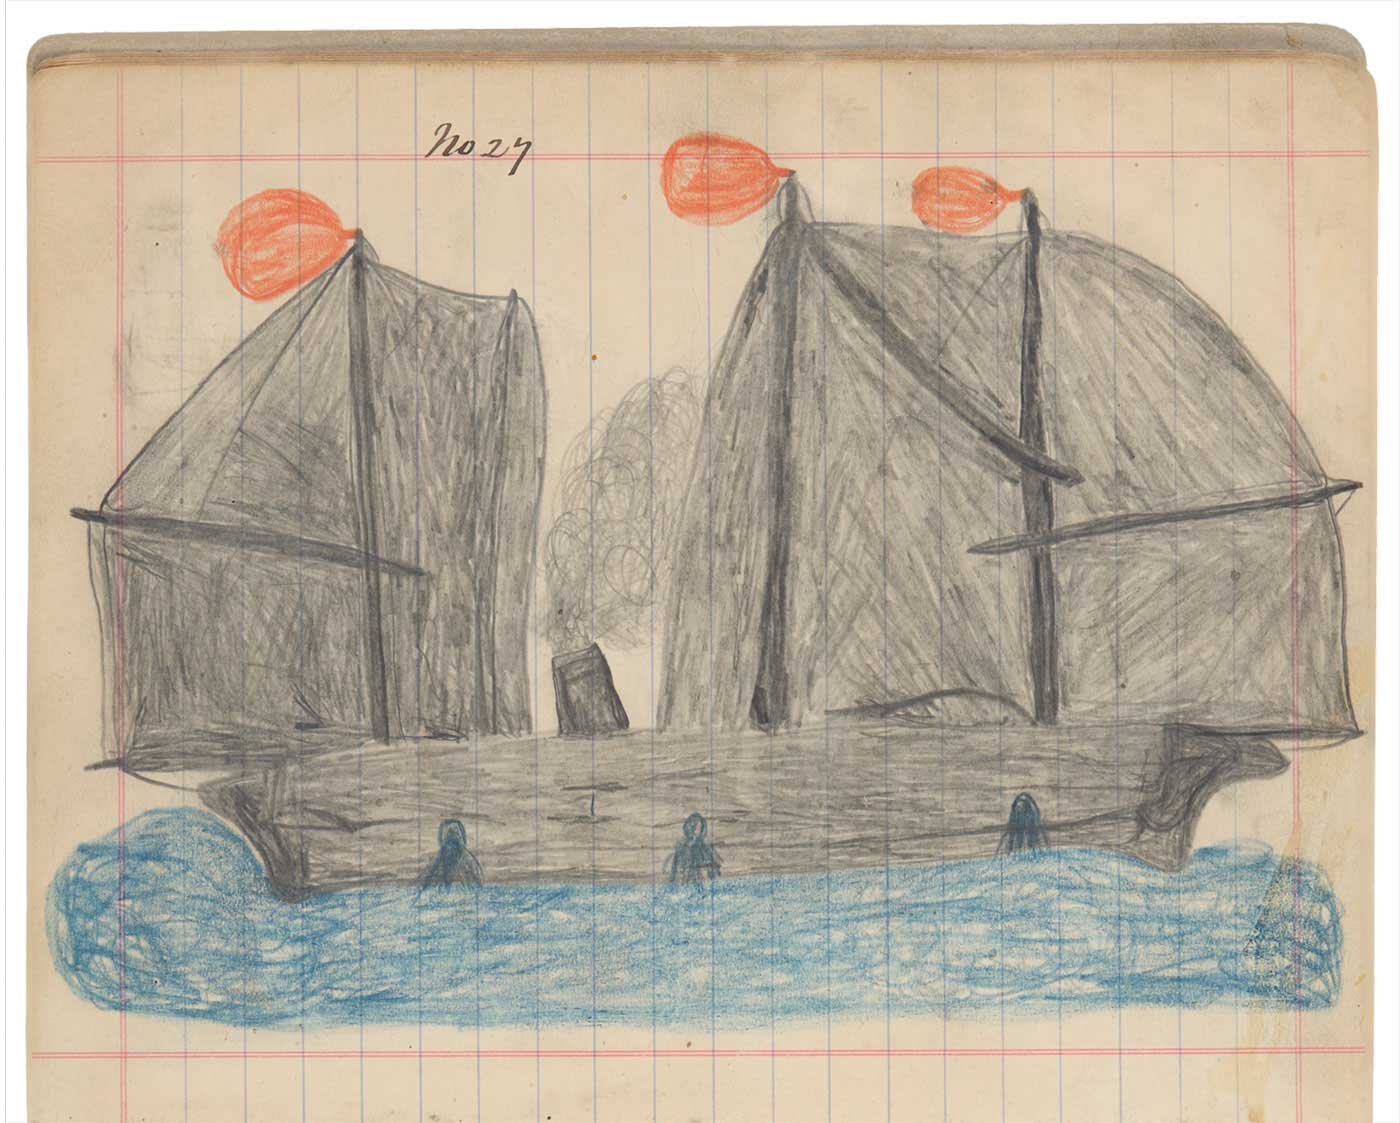 Sketchbook drawing of a grey ship, with three orange flags and a chimney pouring out smoke, on the blue water. Three blue figures can be seen rising from the water. - click to view larger image